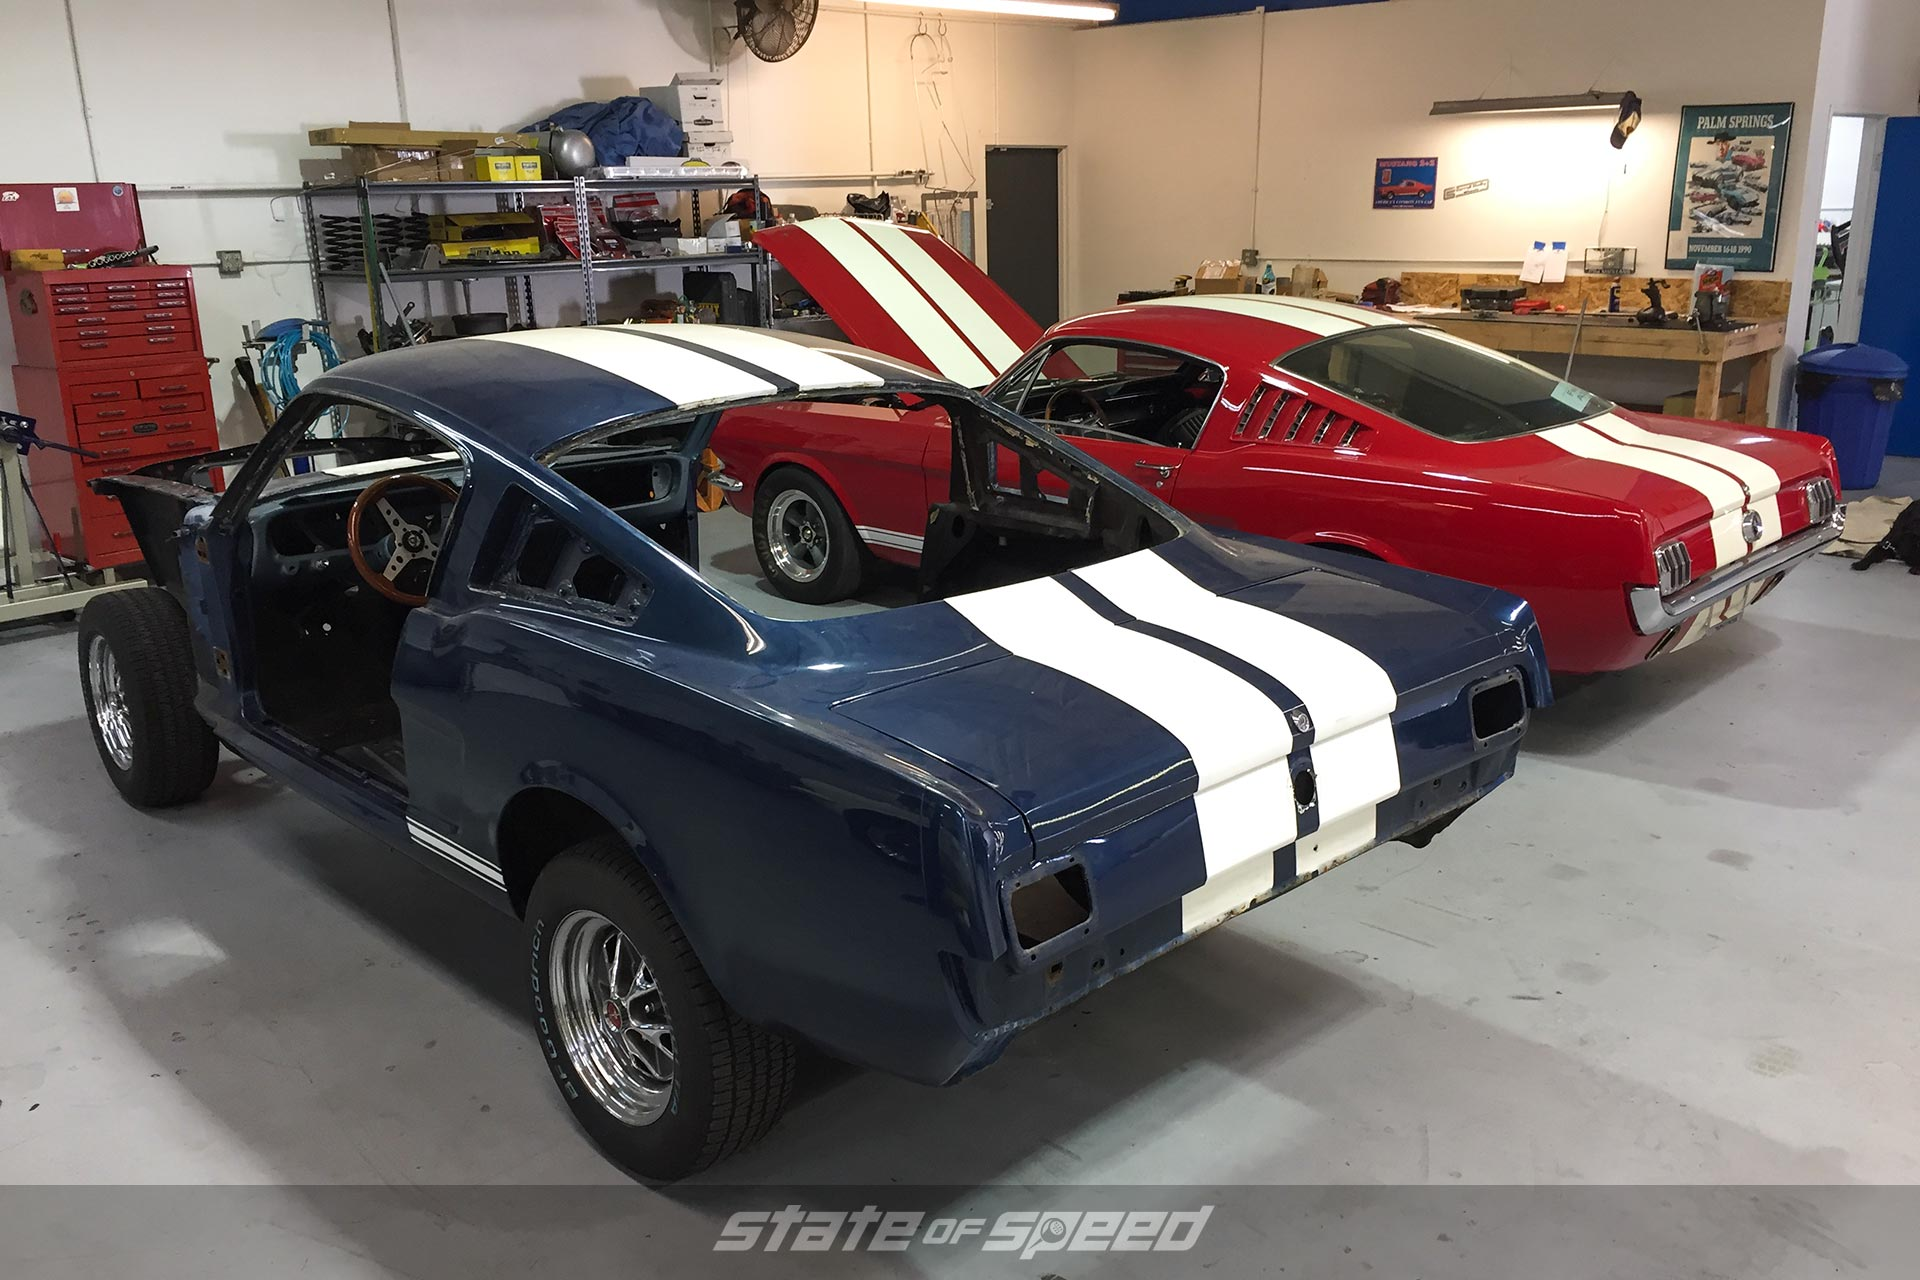 Ford Mustang bodies in the shop